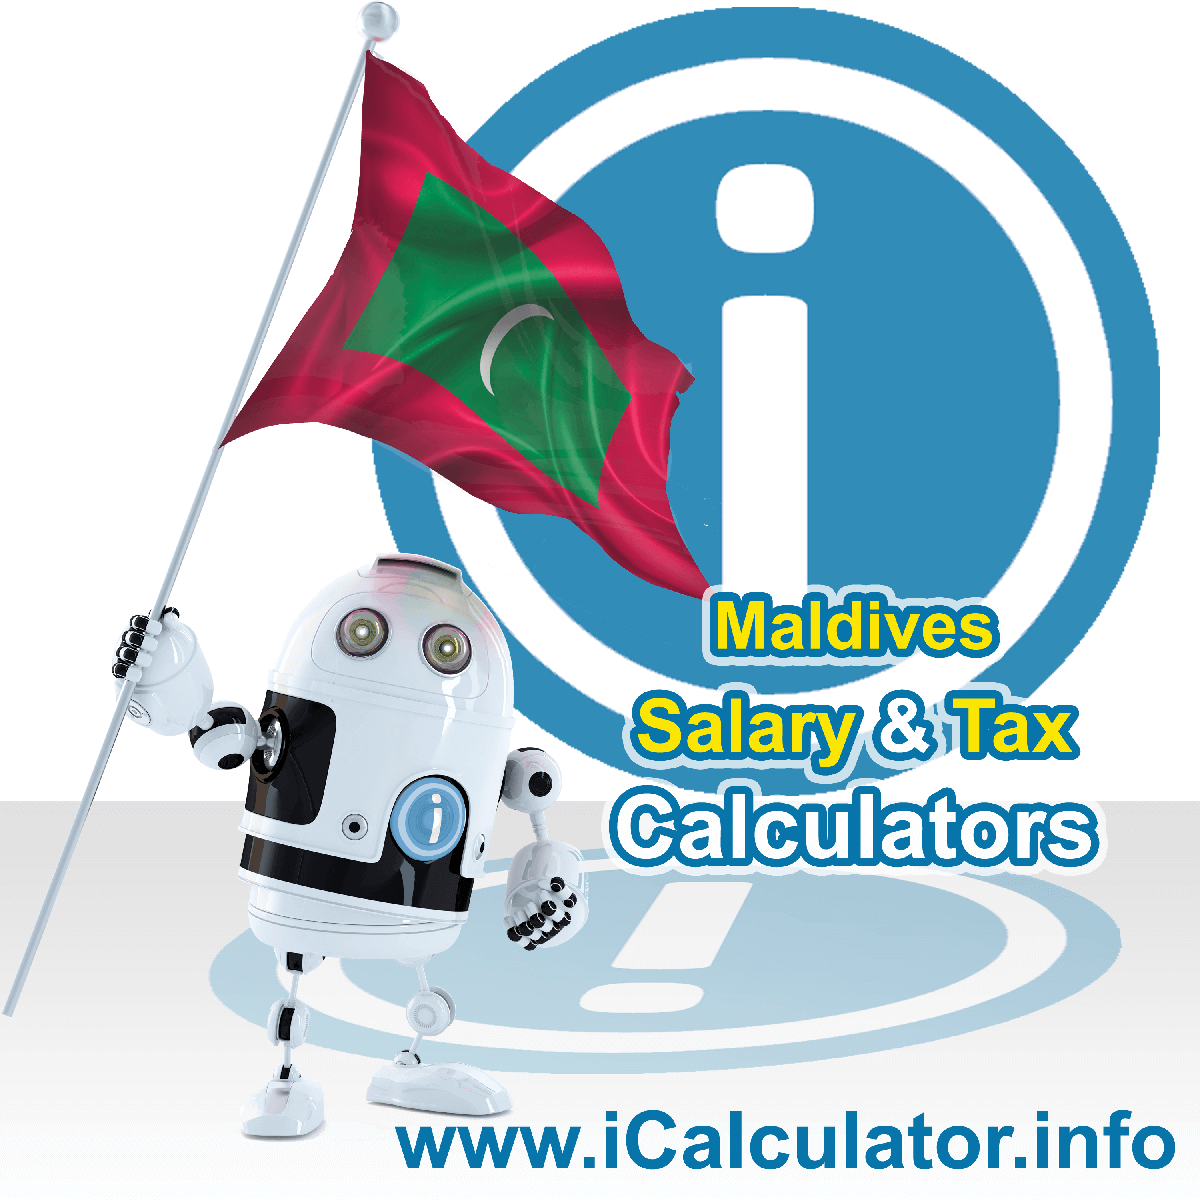 Maldives Salary Calculator. This image shows the Maldivesese flag and information relating to the tax formula for the Maldives Tax Calculator